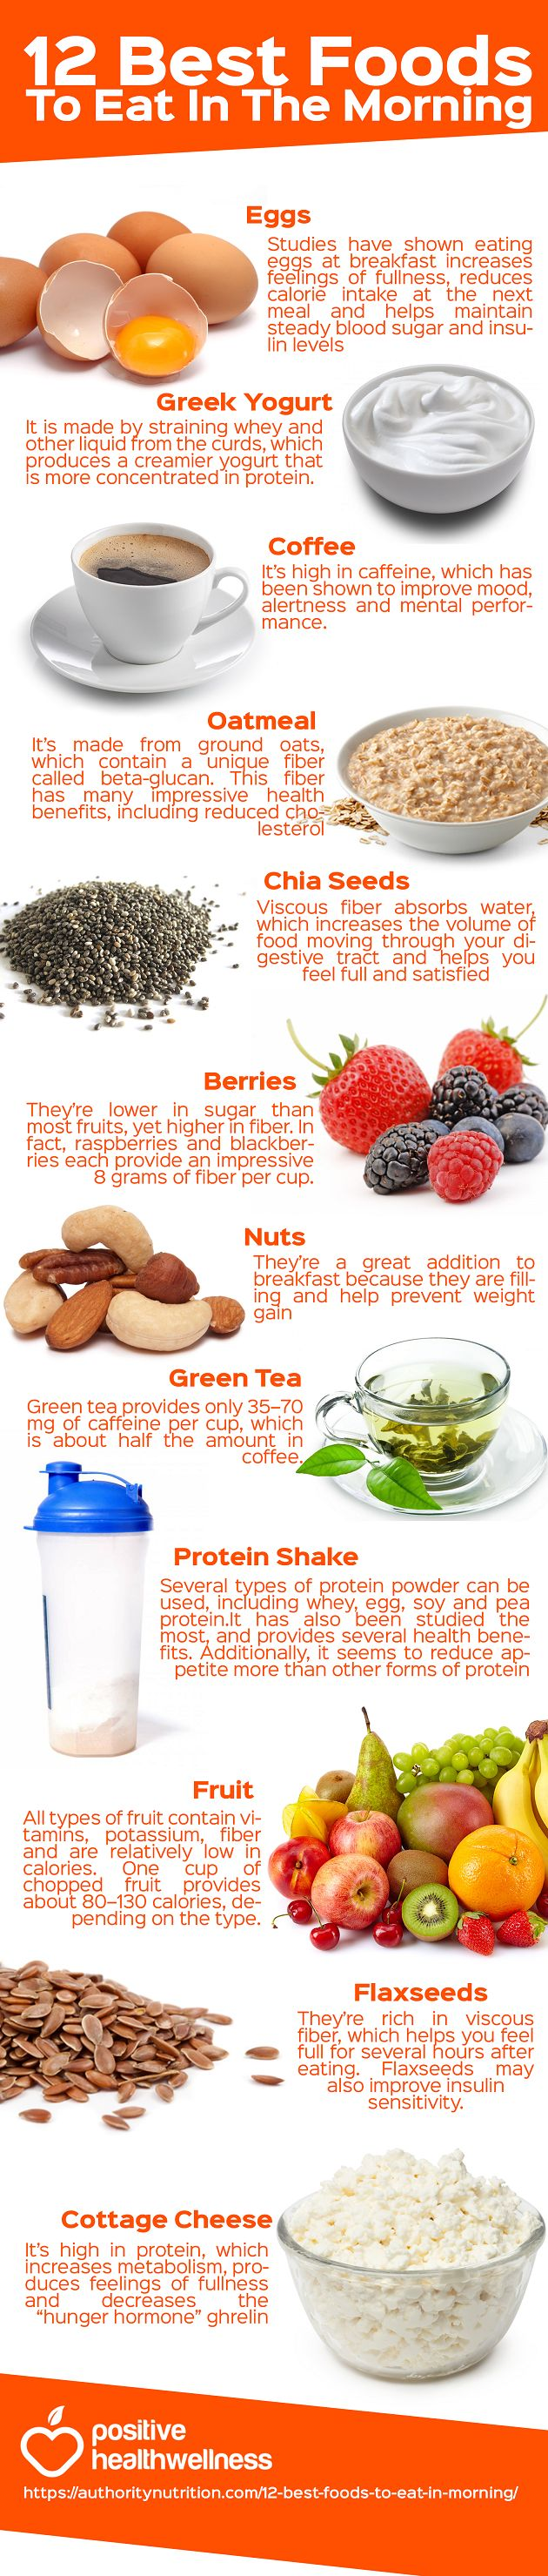 12 Best Foods To Eat In The Morning � Positive Health Wellness Infographic